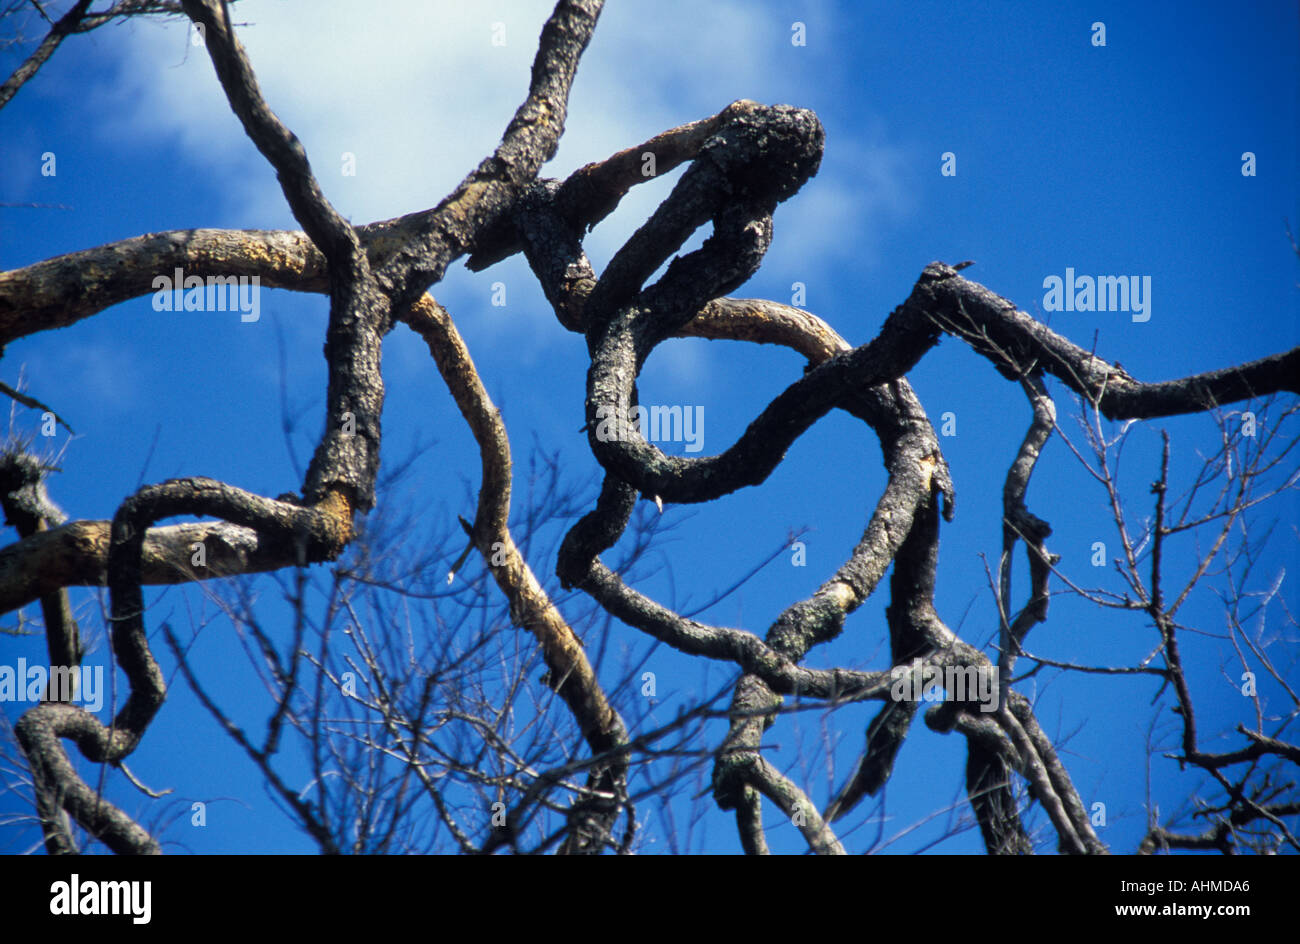 Contorted tree in Chapada Dos Veadeiros, Central Brasil - Stock Image